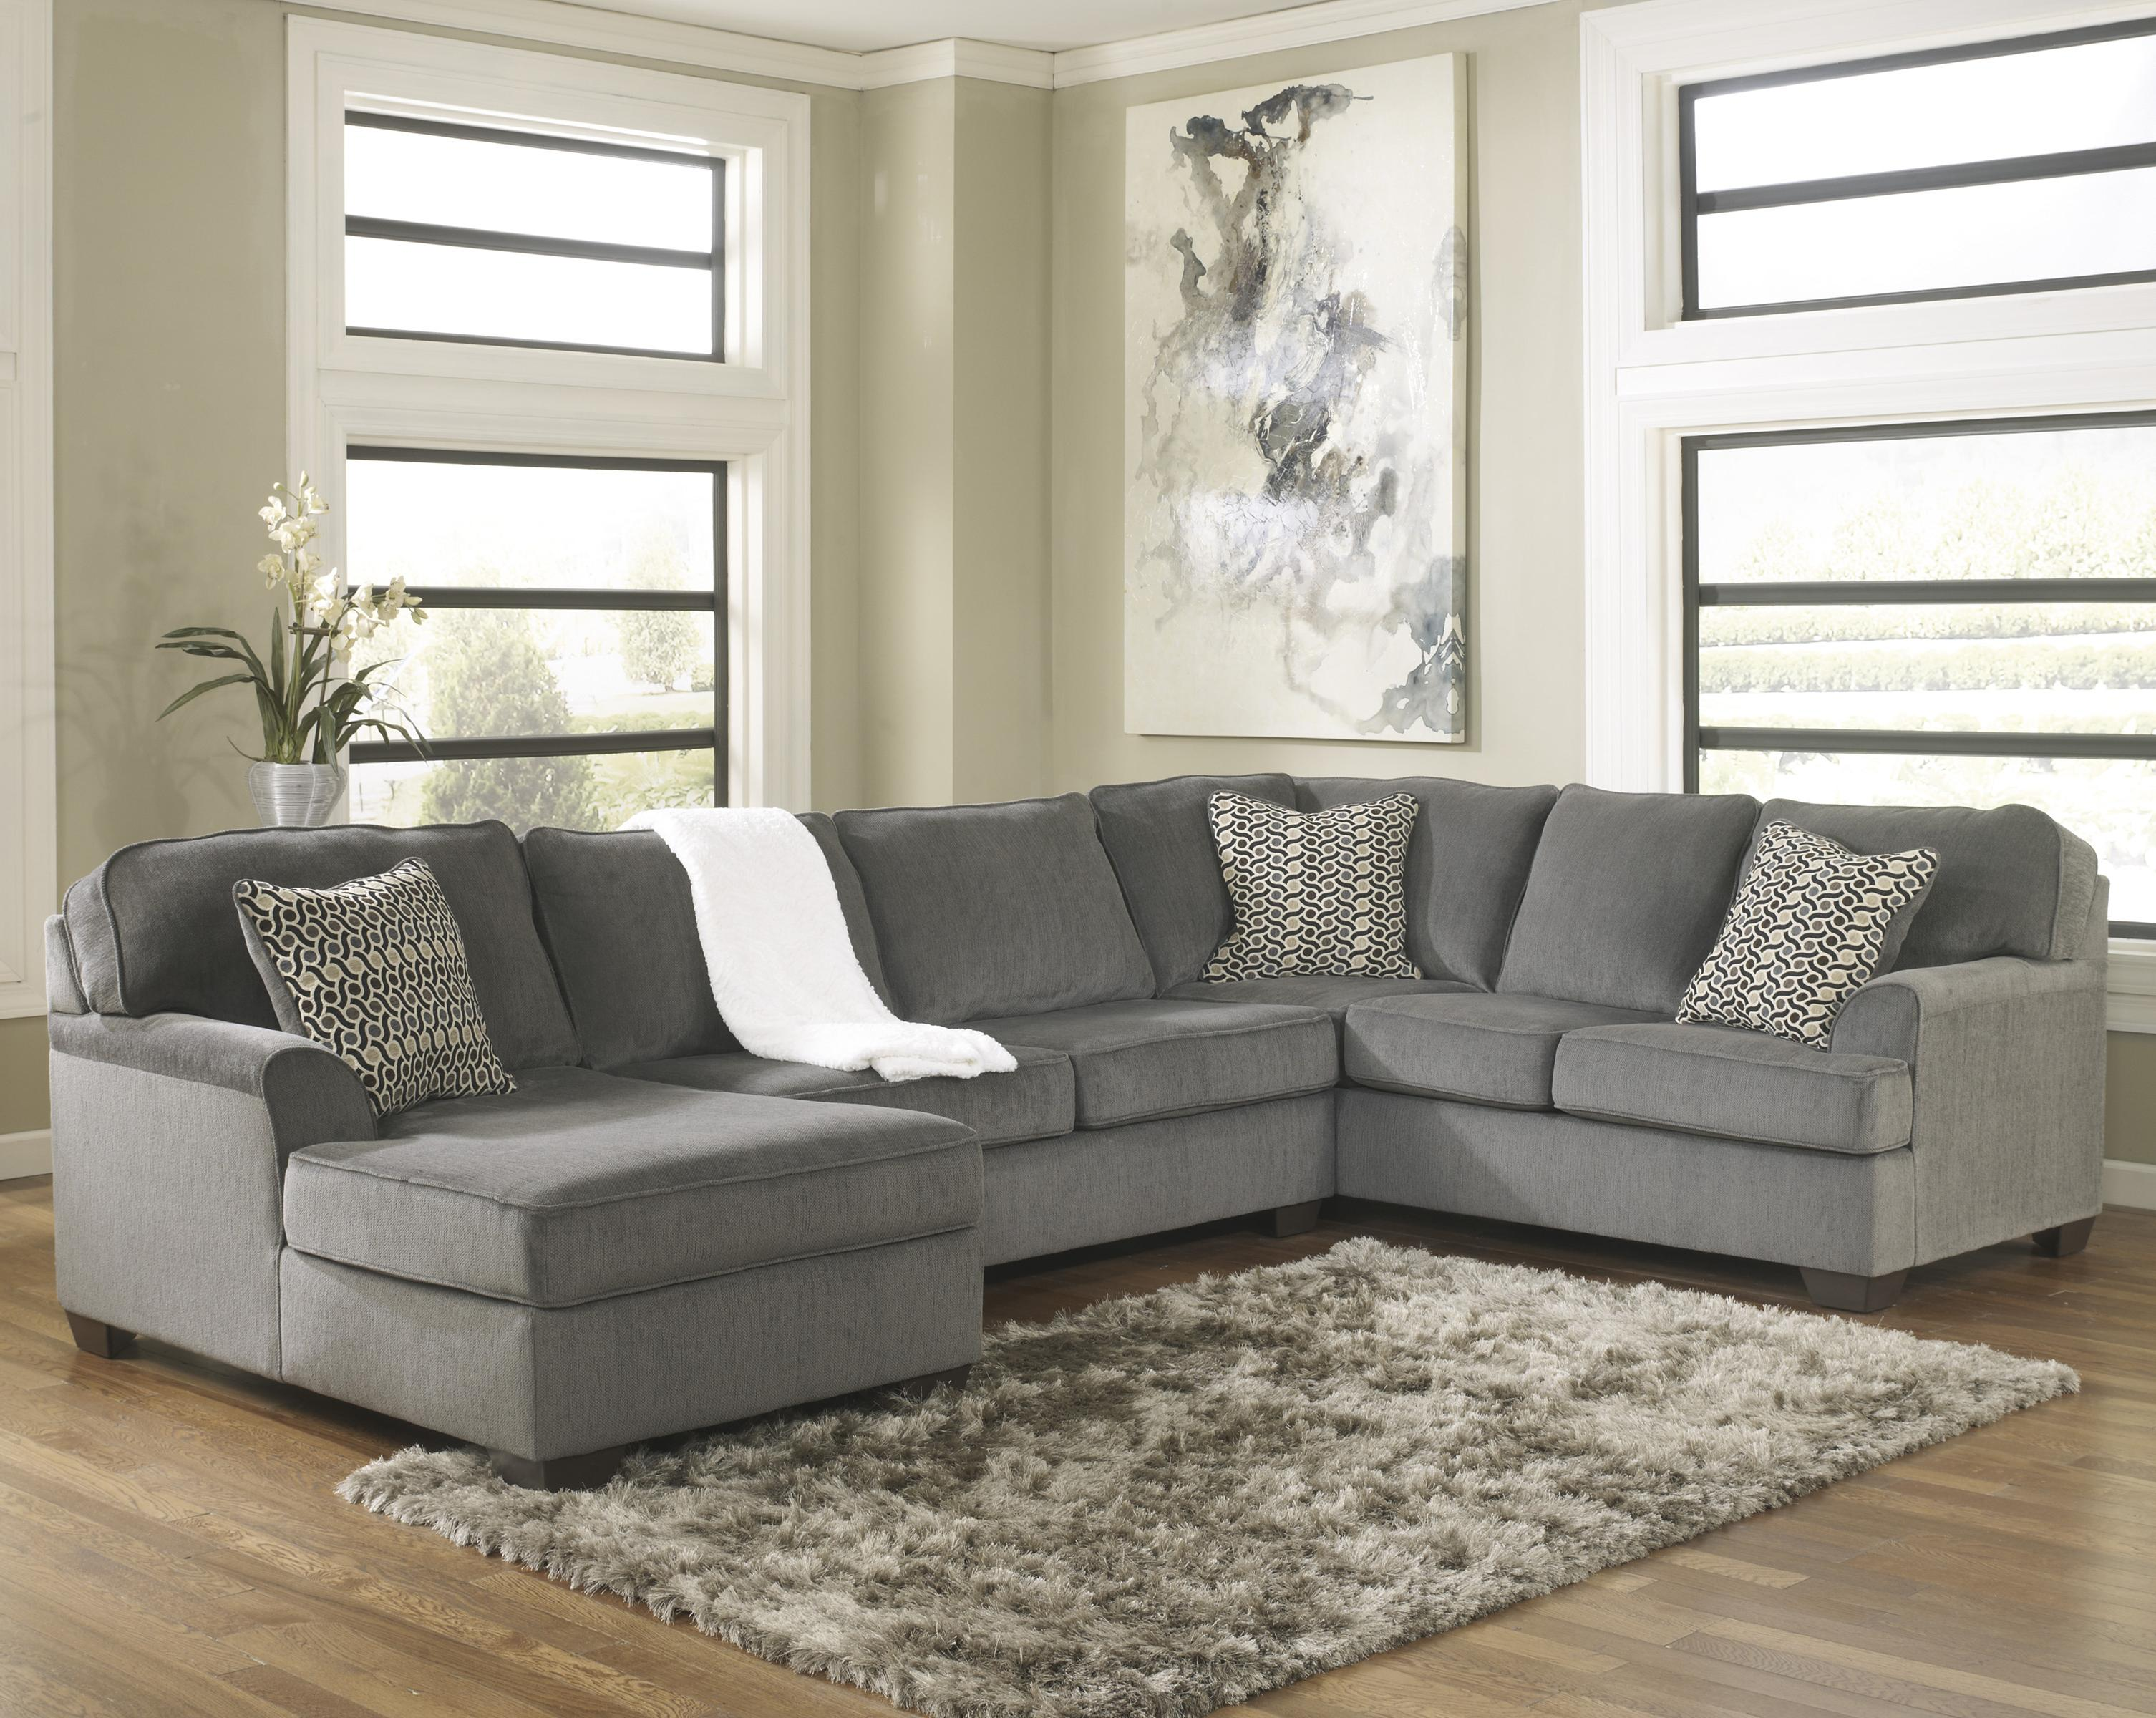 ashley furniture modern sofa leather and velvet loric smoke contemporary 3 piece